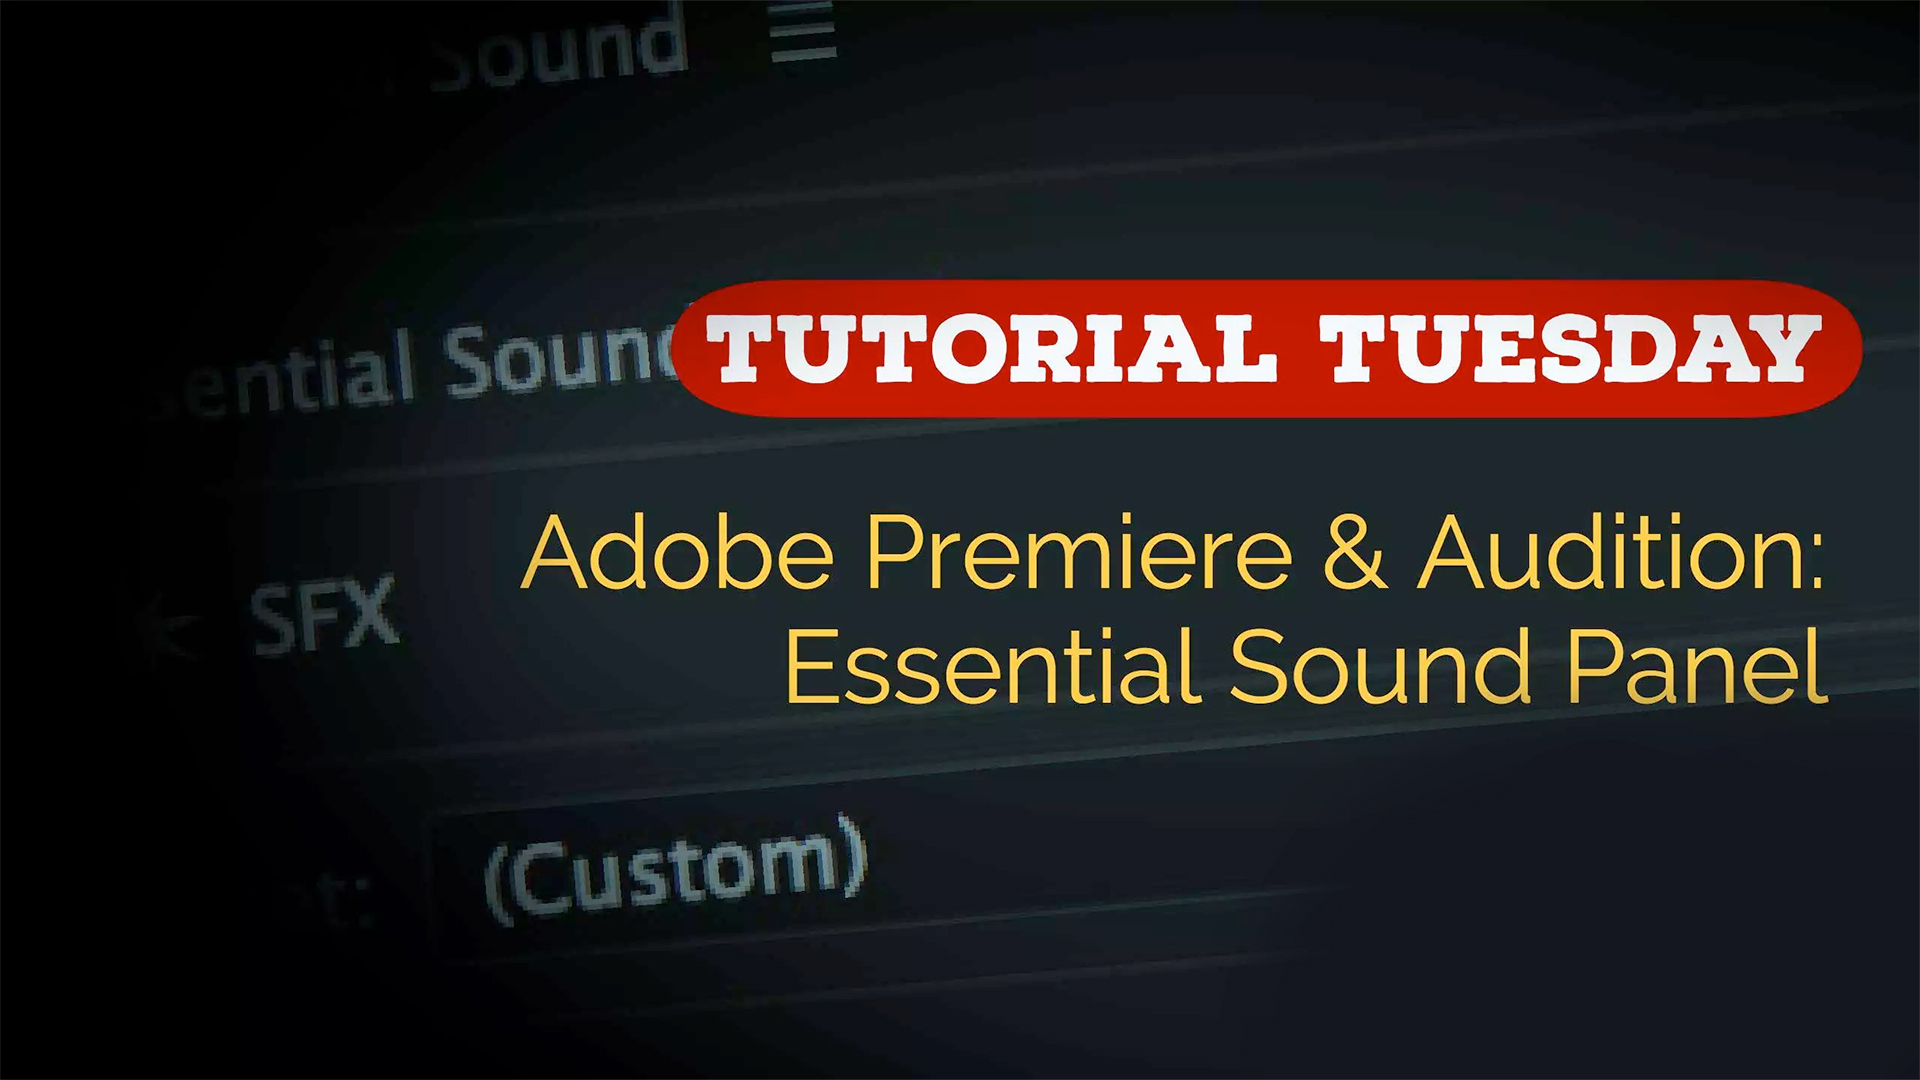 Adobe essential sound panel